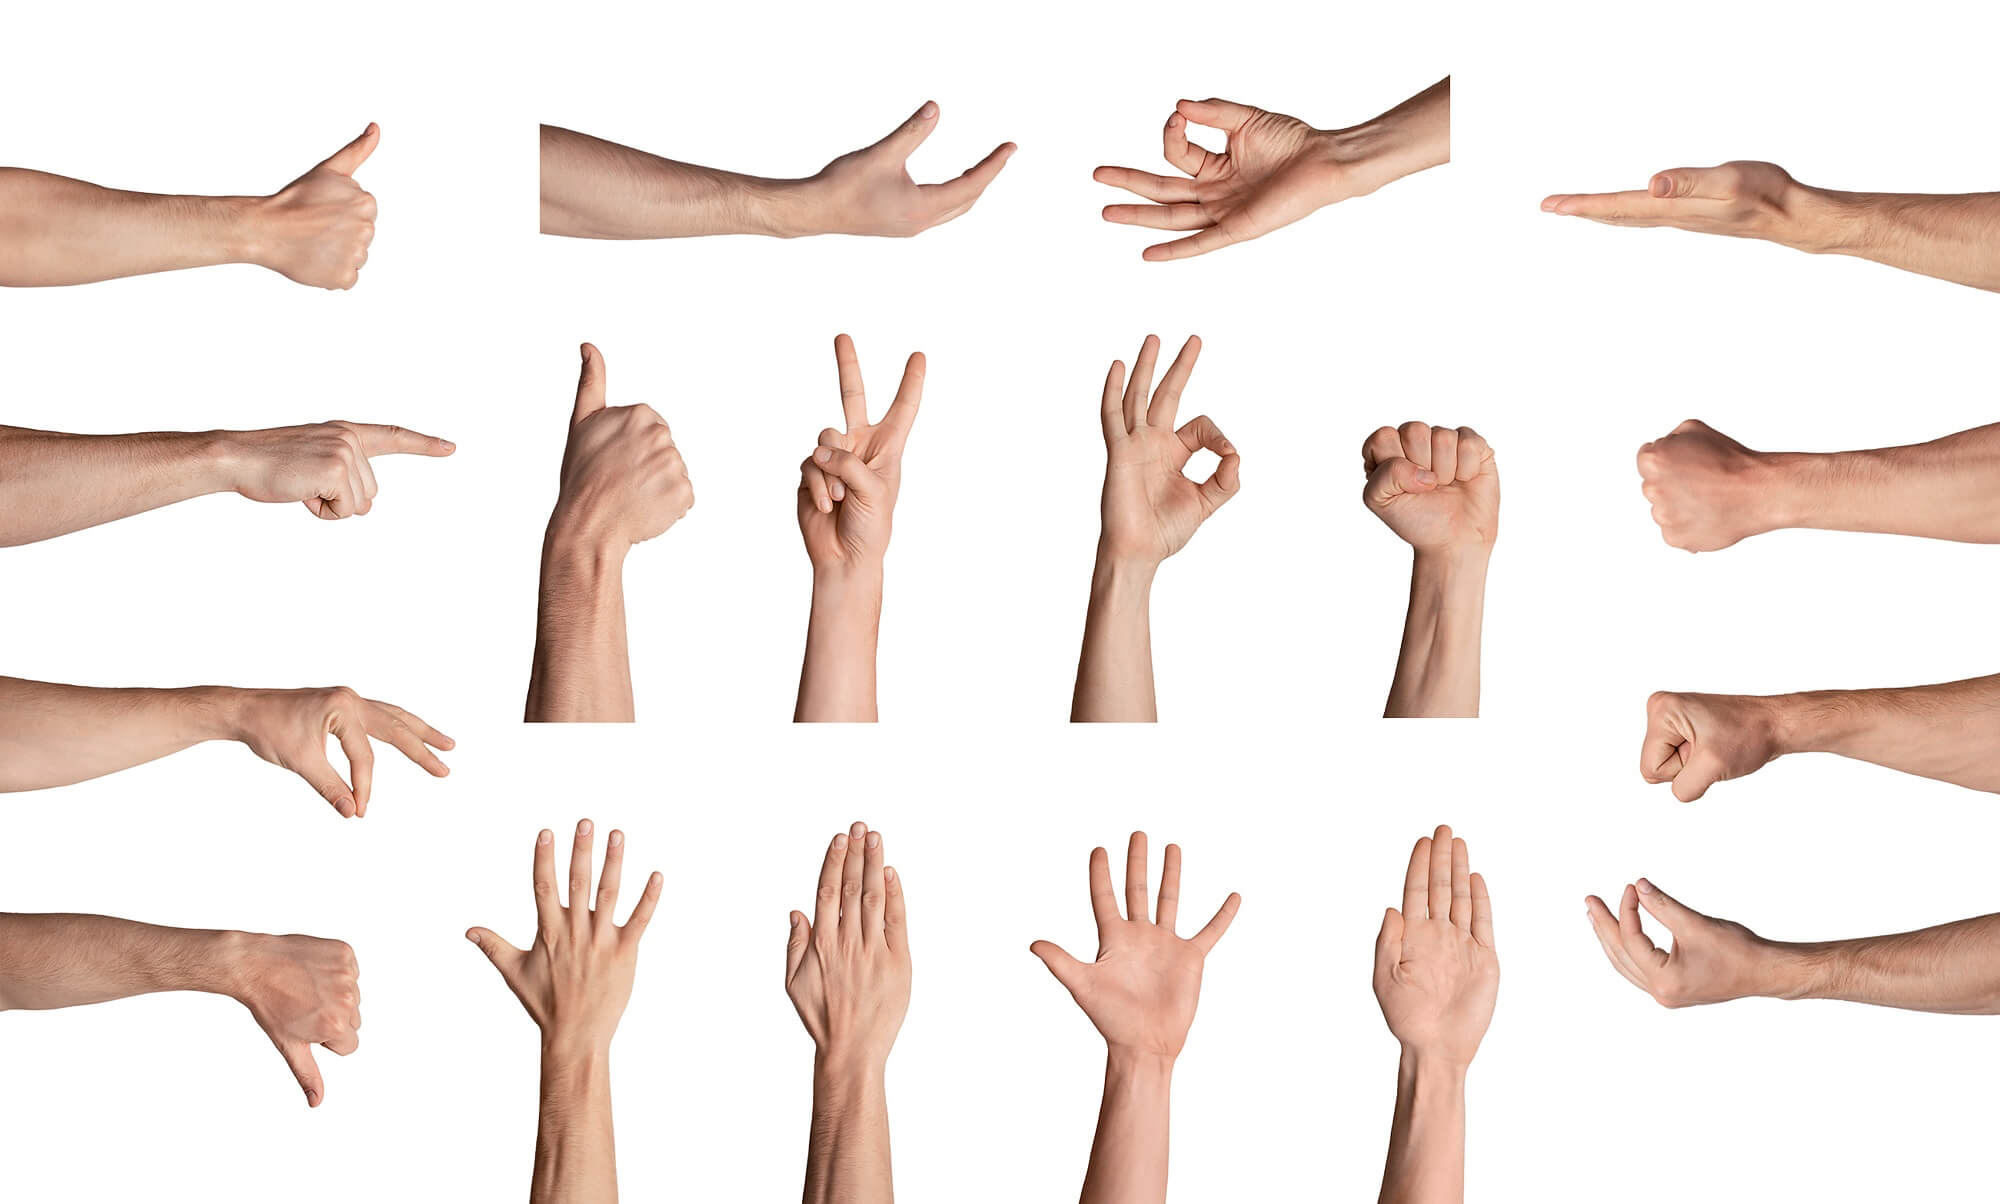 Collection of male hands gesturing different signs over white background, isolated. Collage